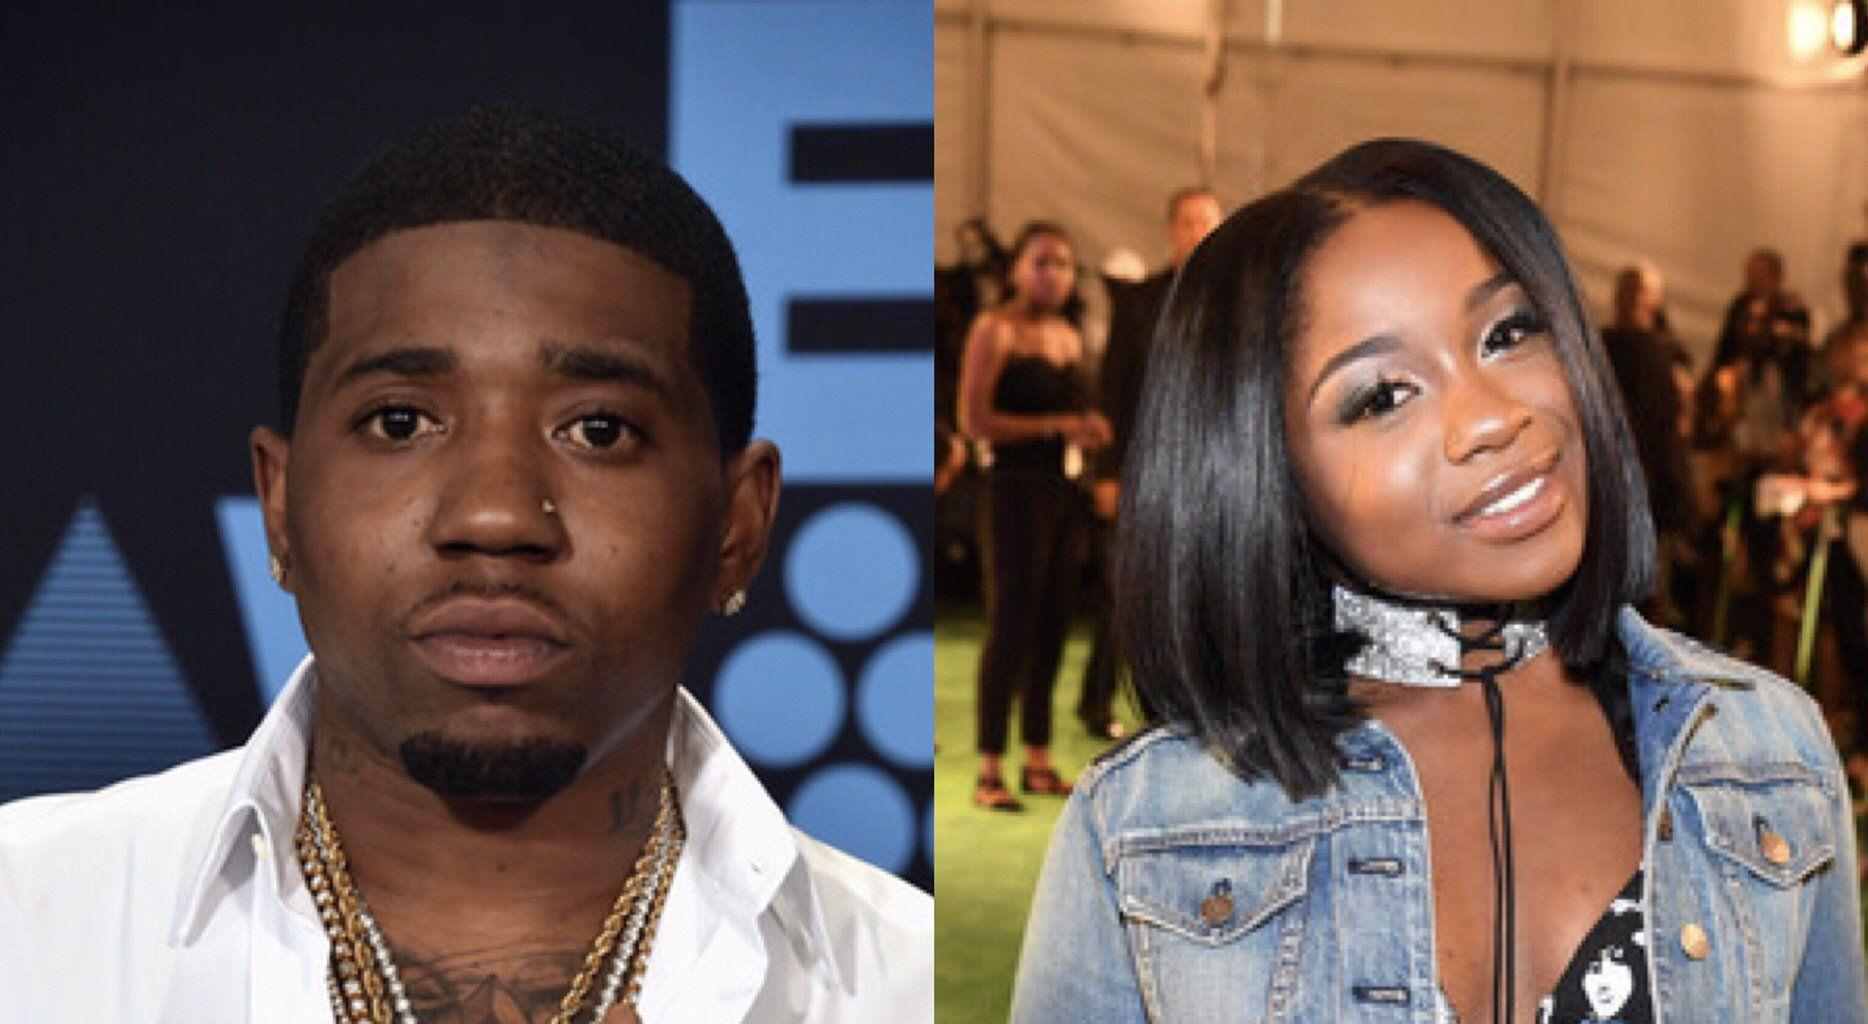 Lil Wayne's Daughter Reginae Carter Shows Off Scandalous Dancing Moves On YFN Lucci's Music And Fans Are Freaking Out